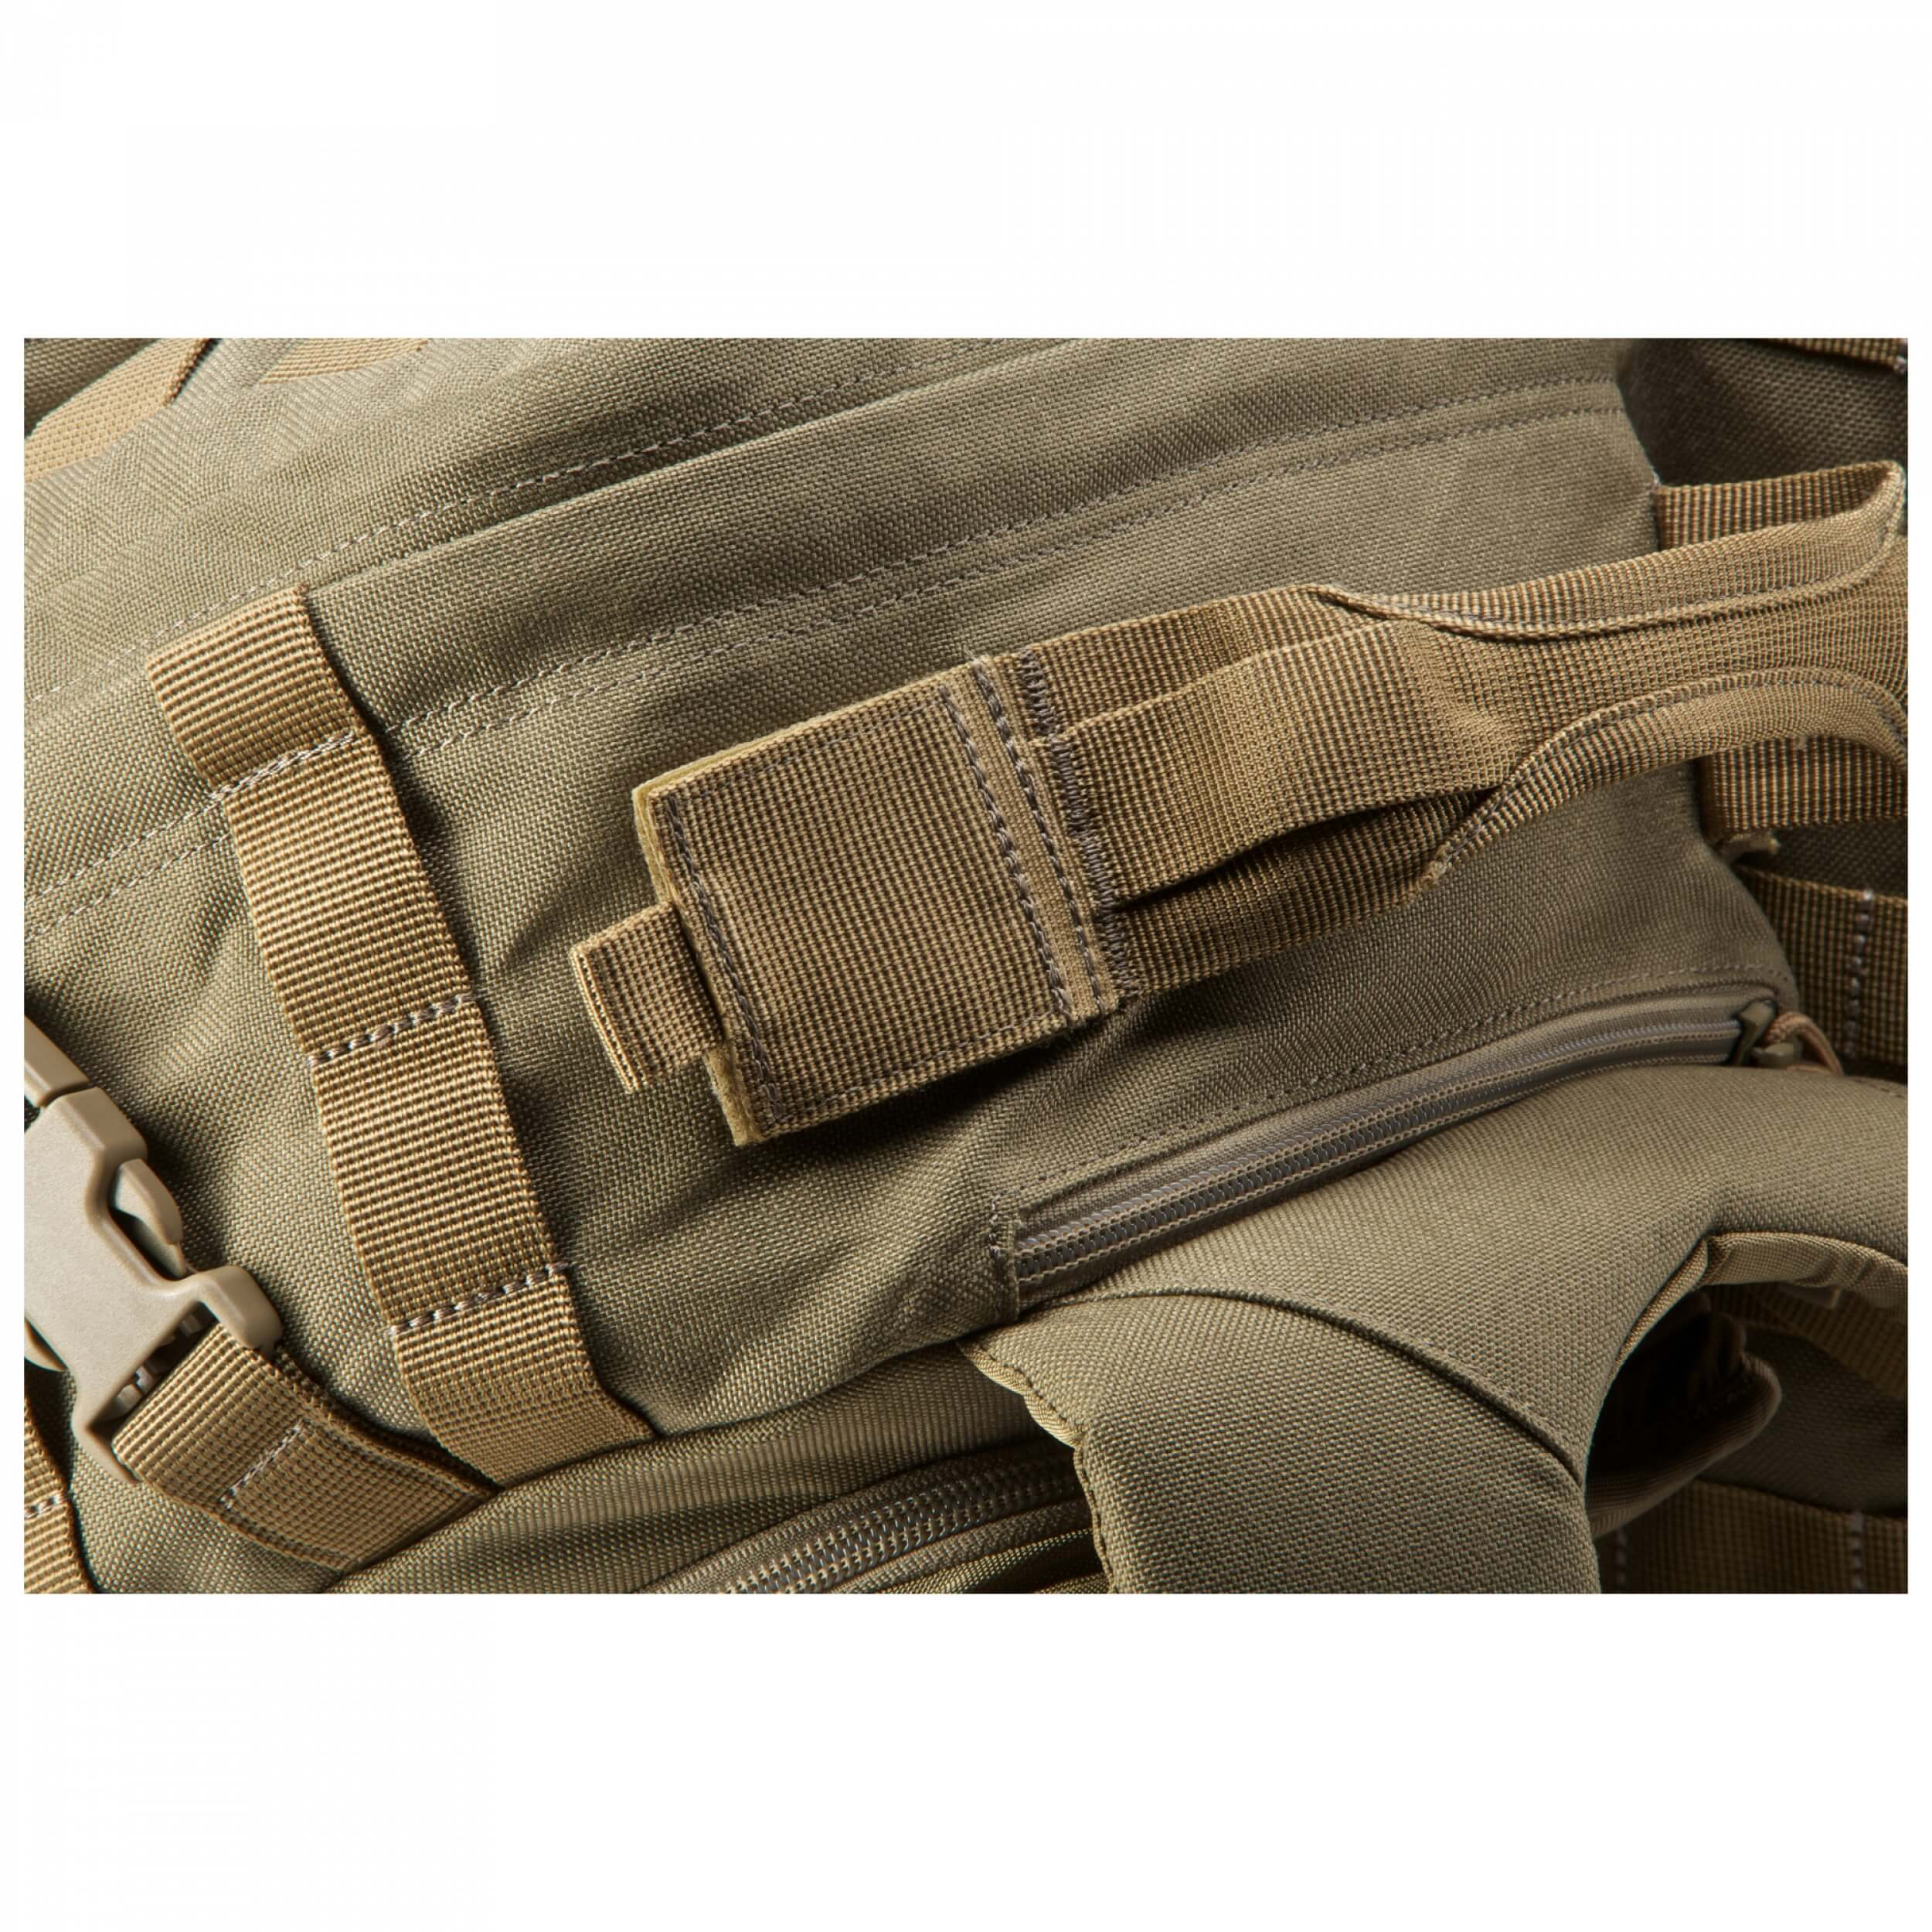 5.11 Tactical Rush 24 Backpack Sandstone